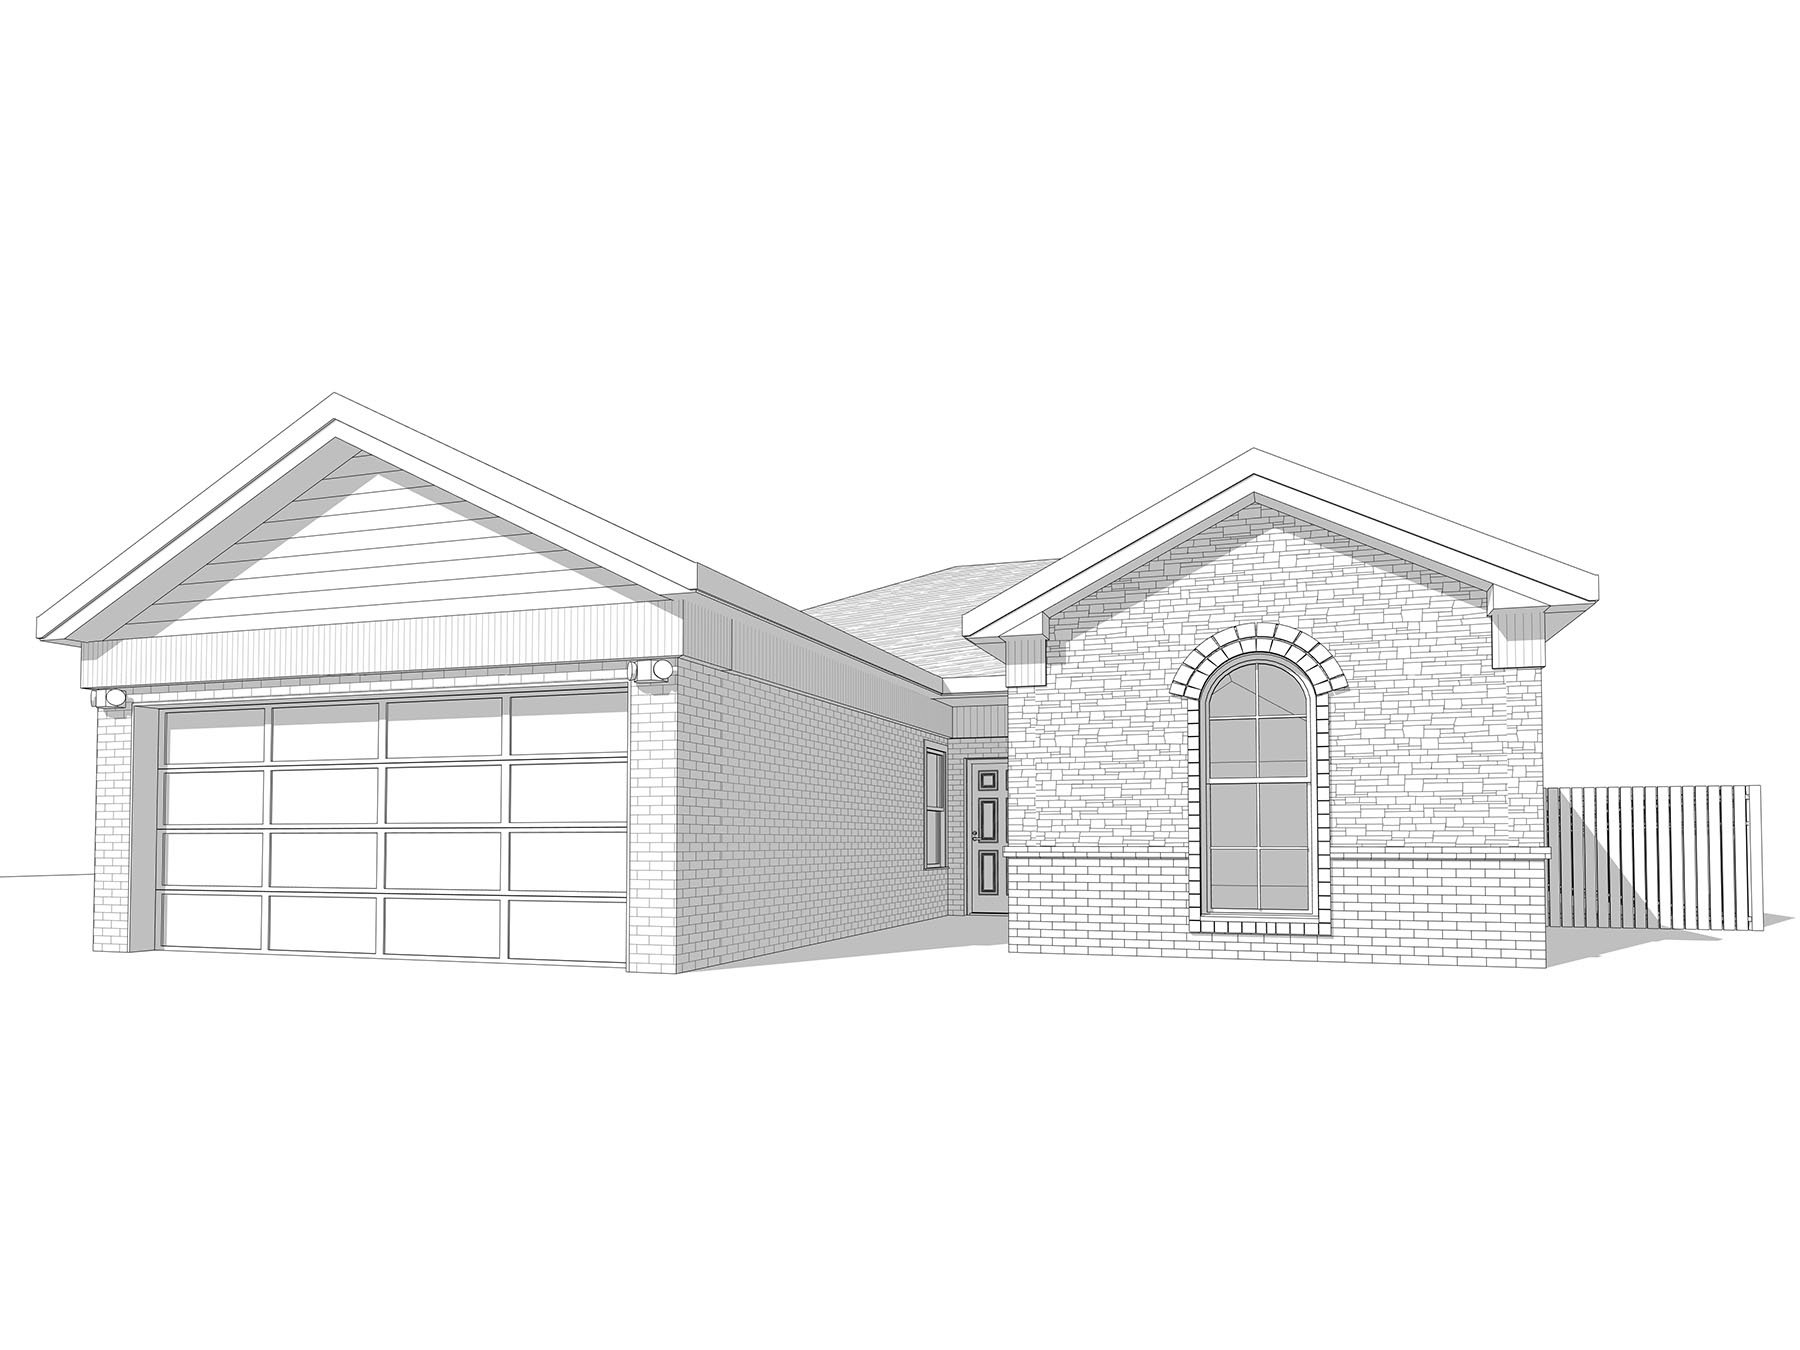 407 Road 5138 | New Home in Houston, Texas Area